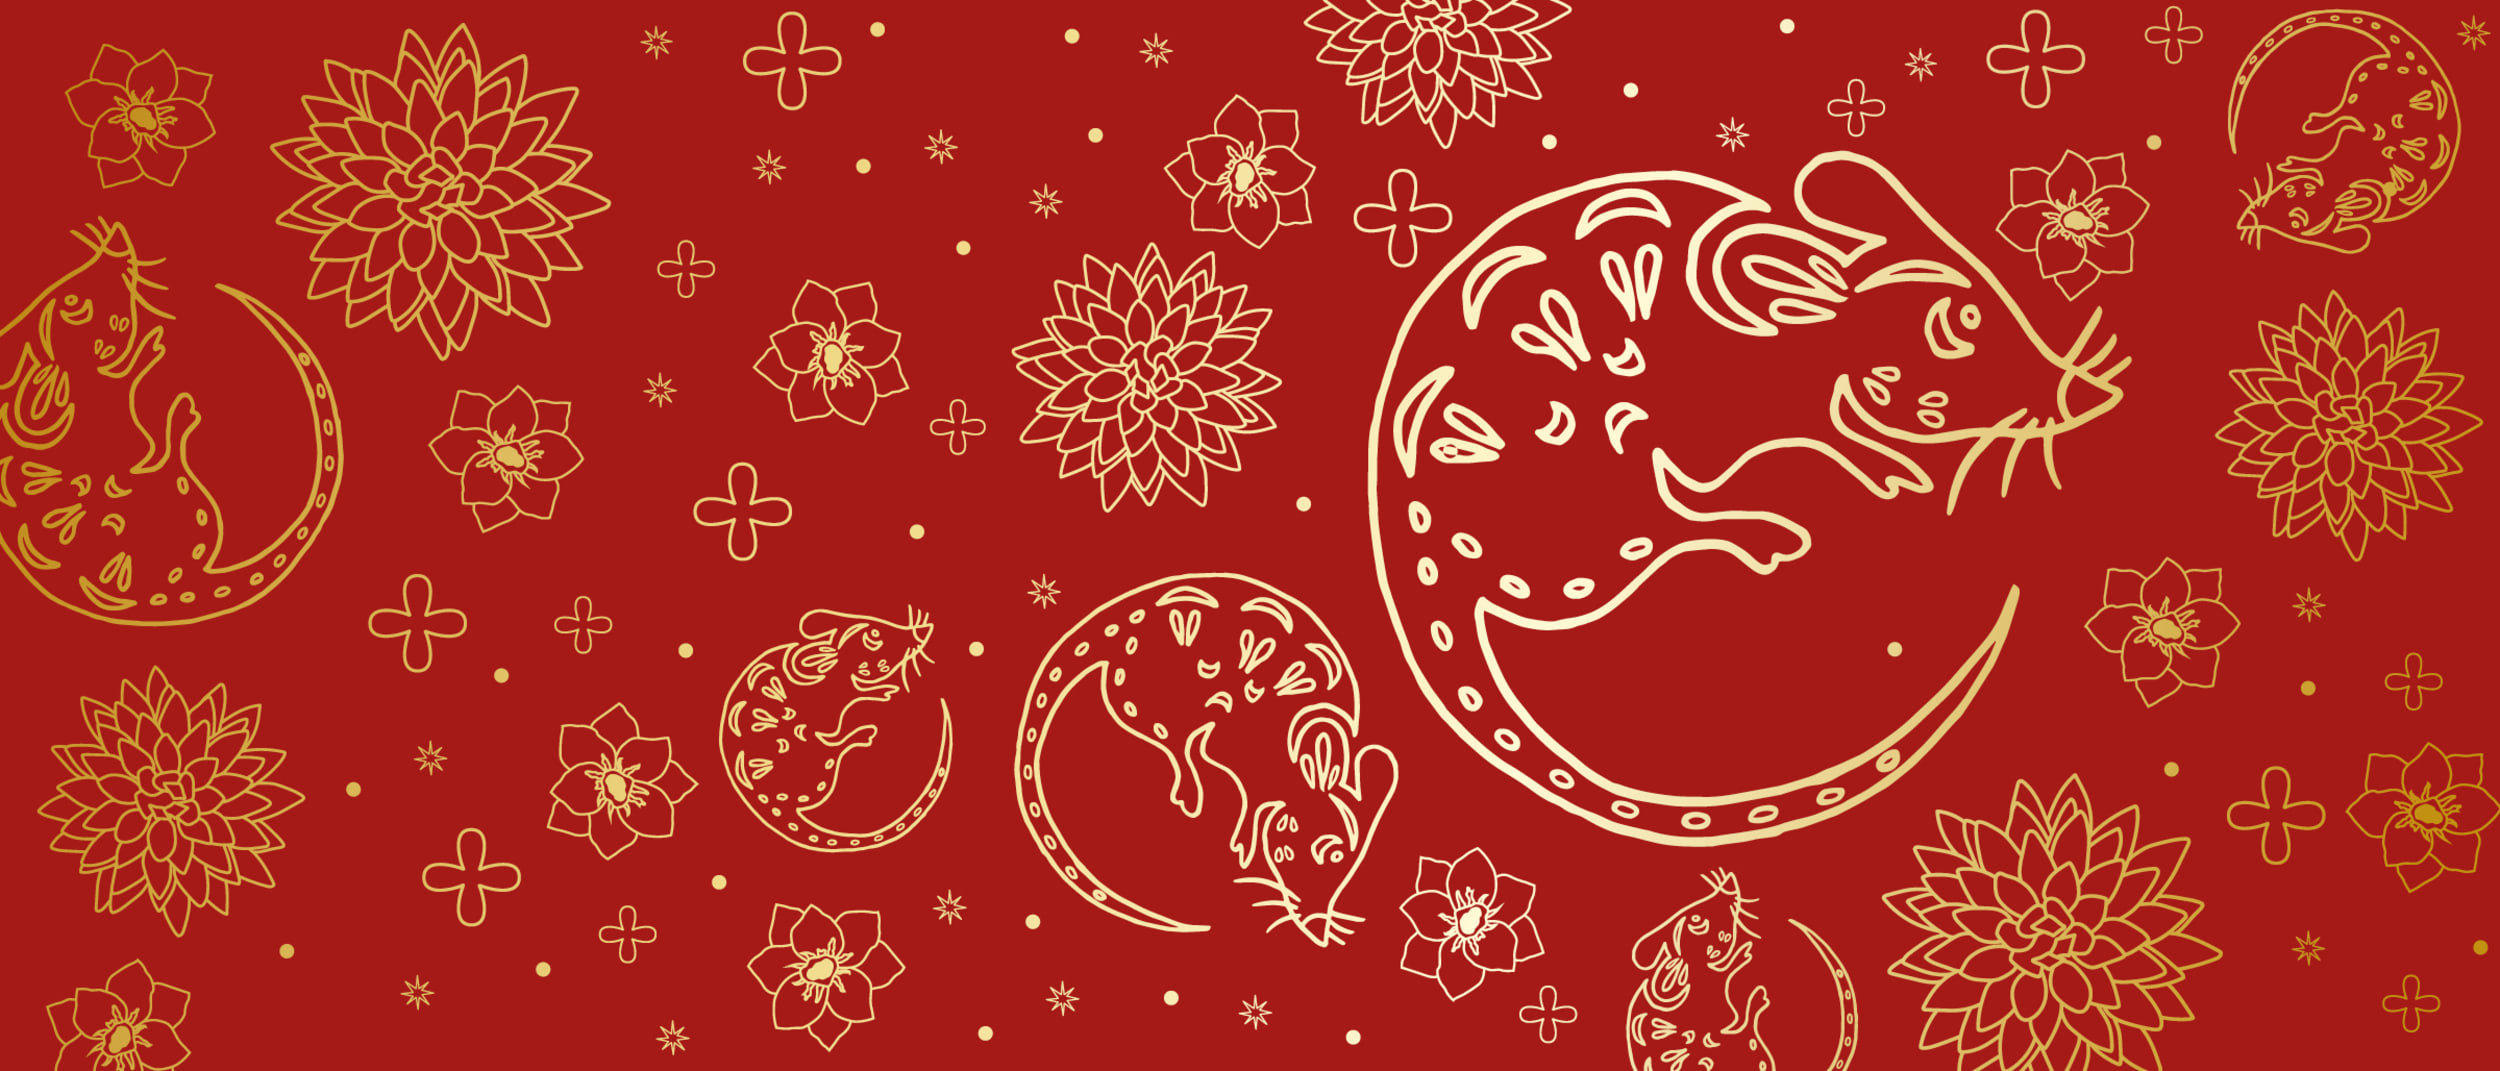 Year of the Pig: what does your Chinese zodiac say about you?